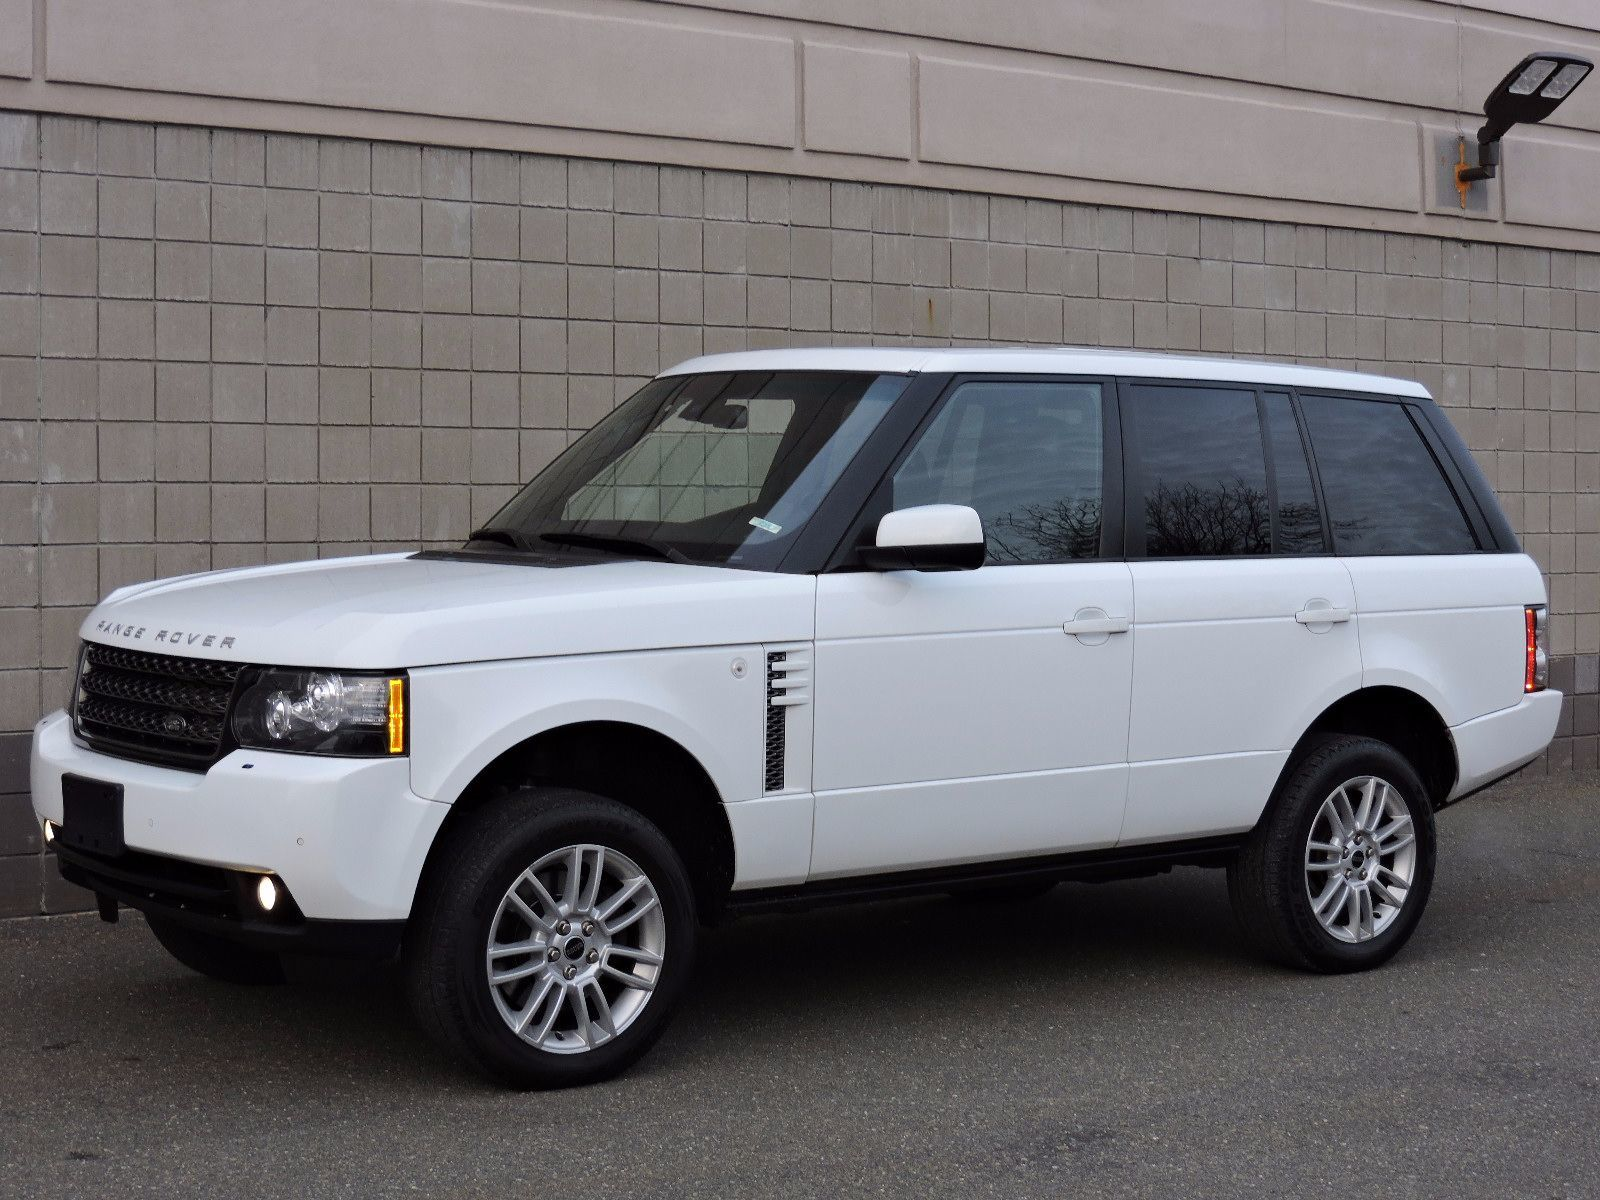 Used 2012 Land Rover Range Rover HSE at Auto House USA Saugus